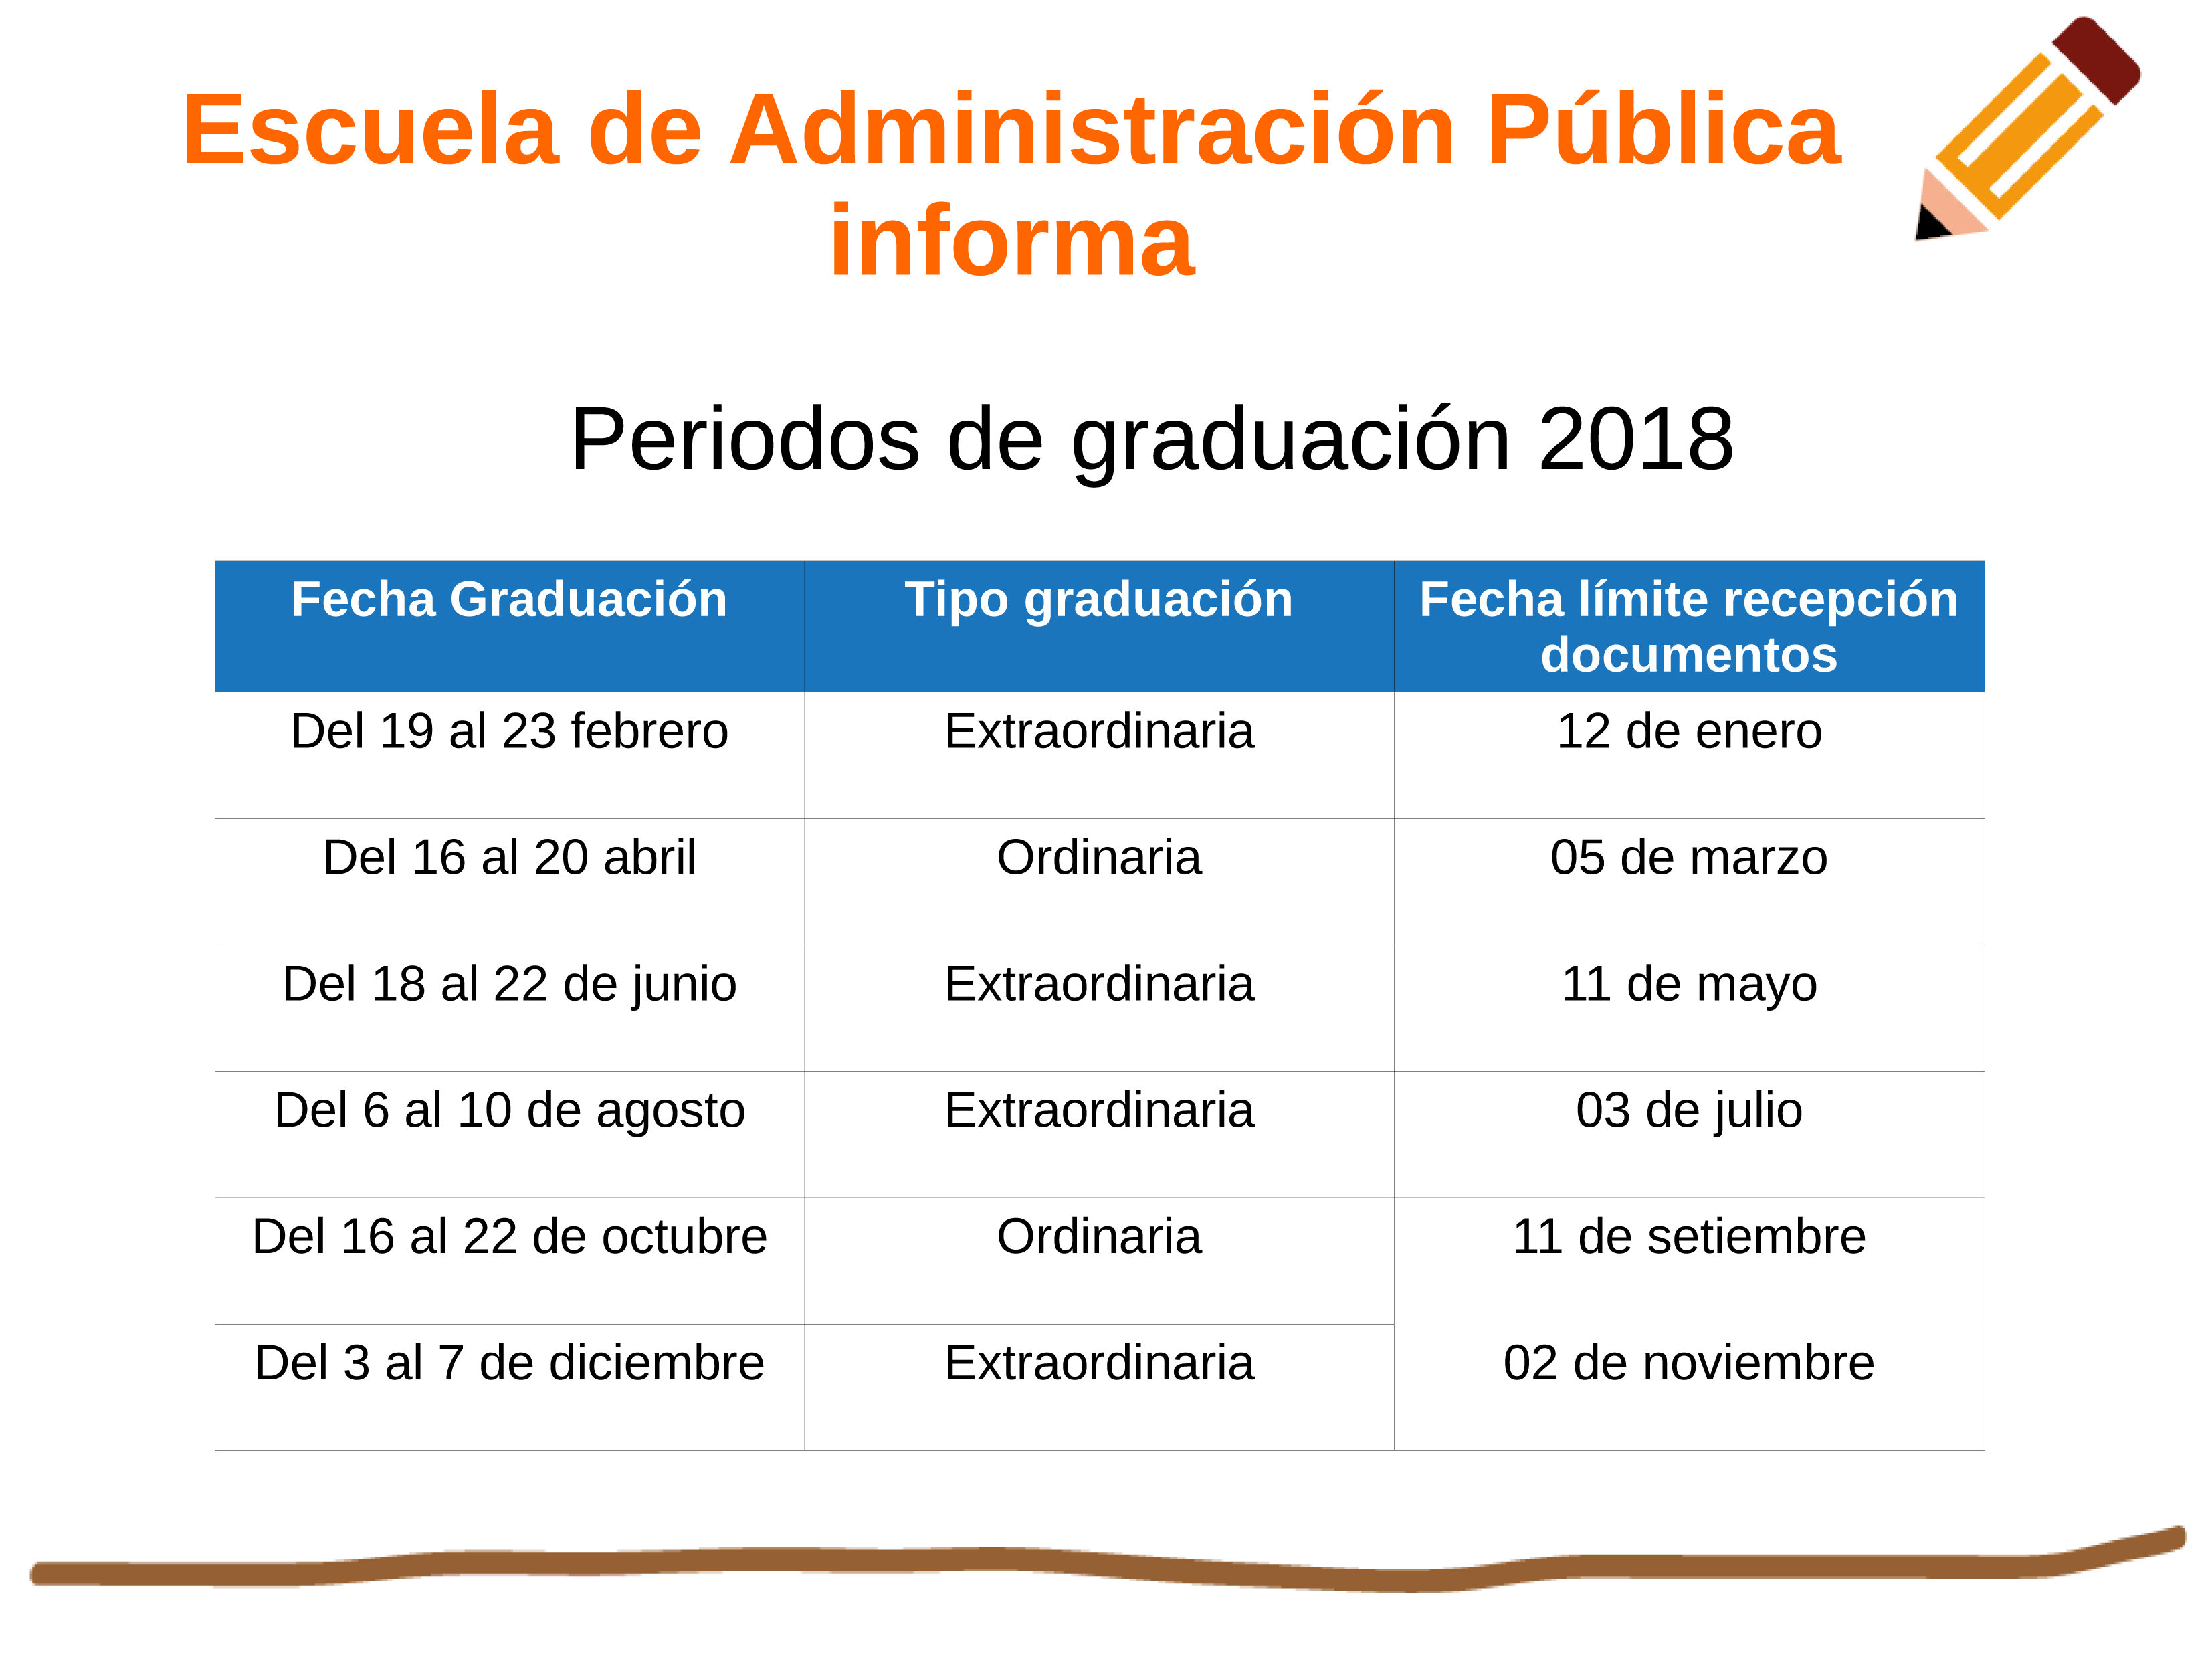 fechas recepcion requisitos graduacion 2018